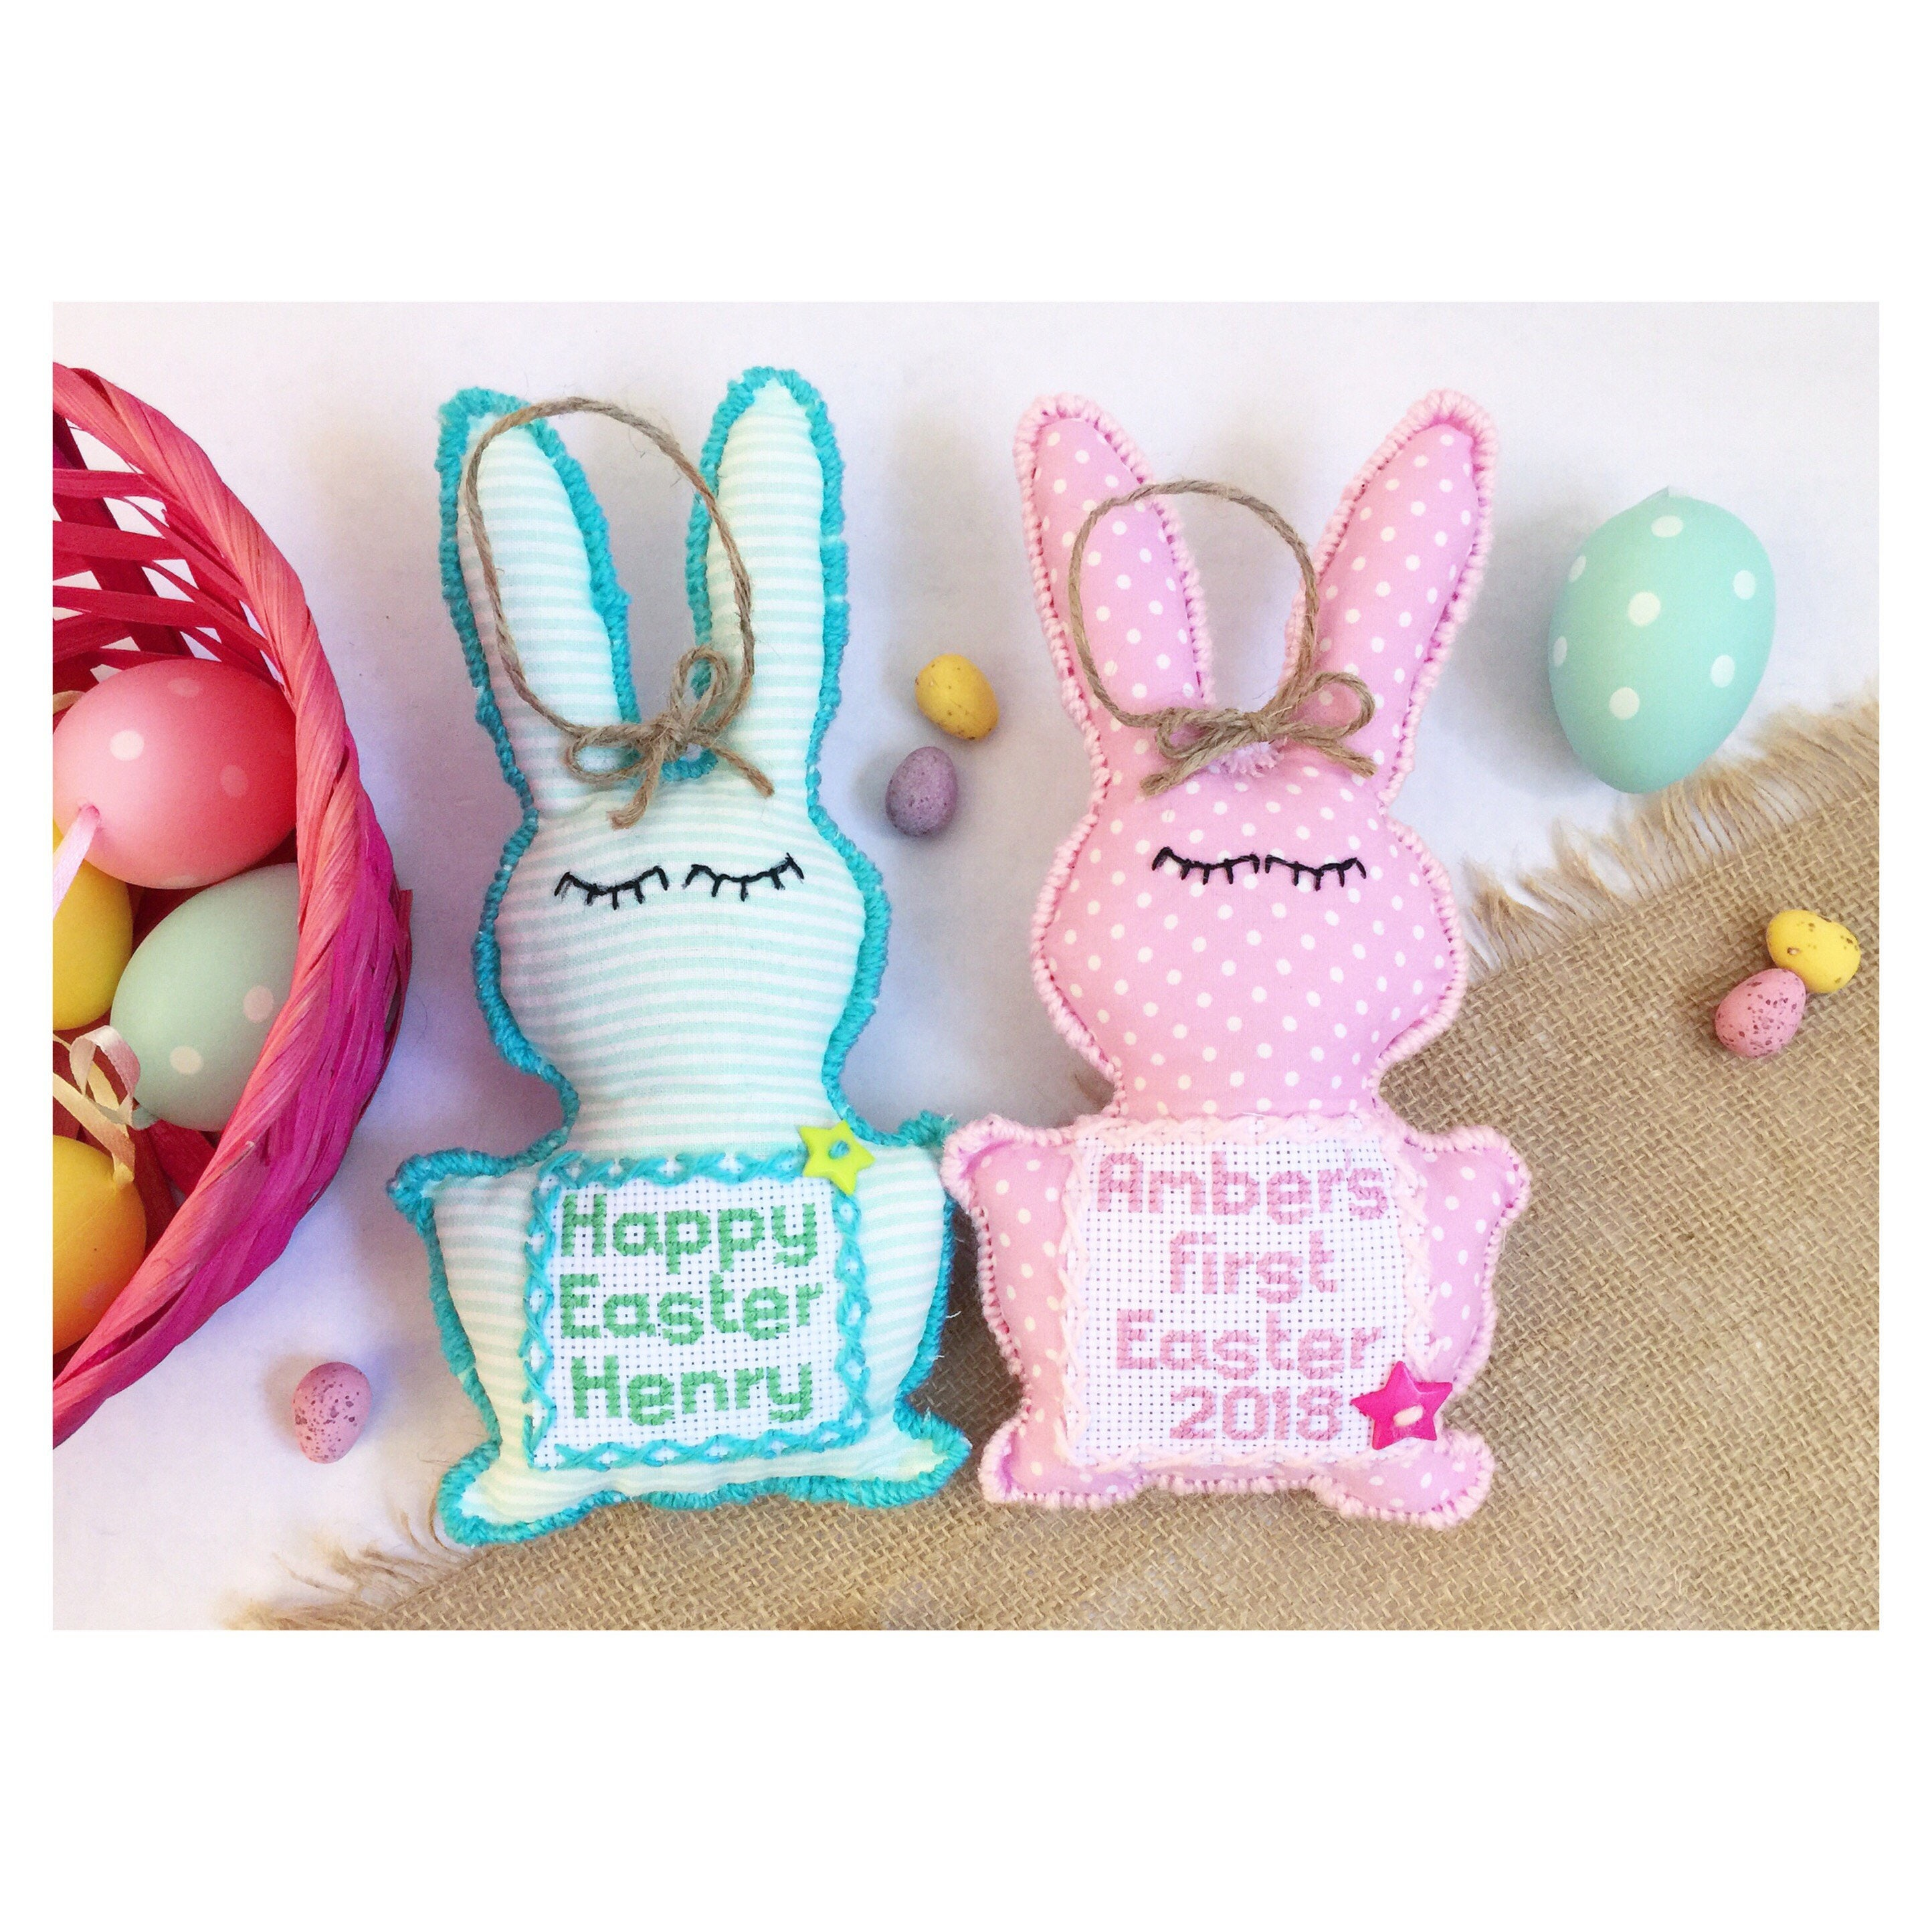 Easter gifts for kidsnew baby giftmy first easterbabys zoom negle Image collections